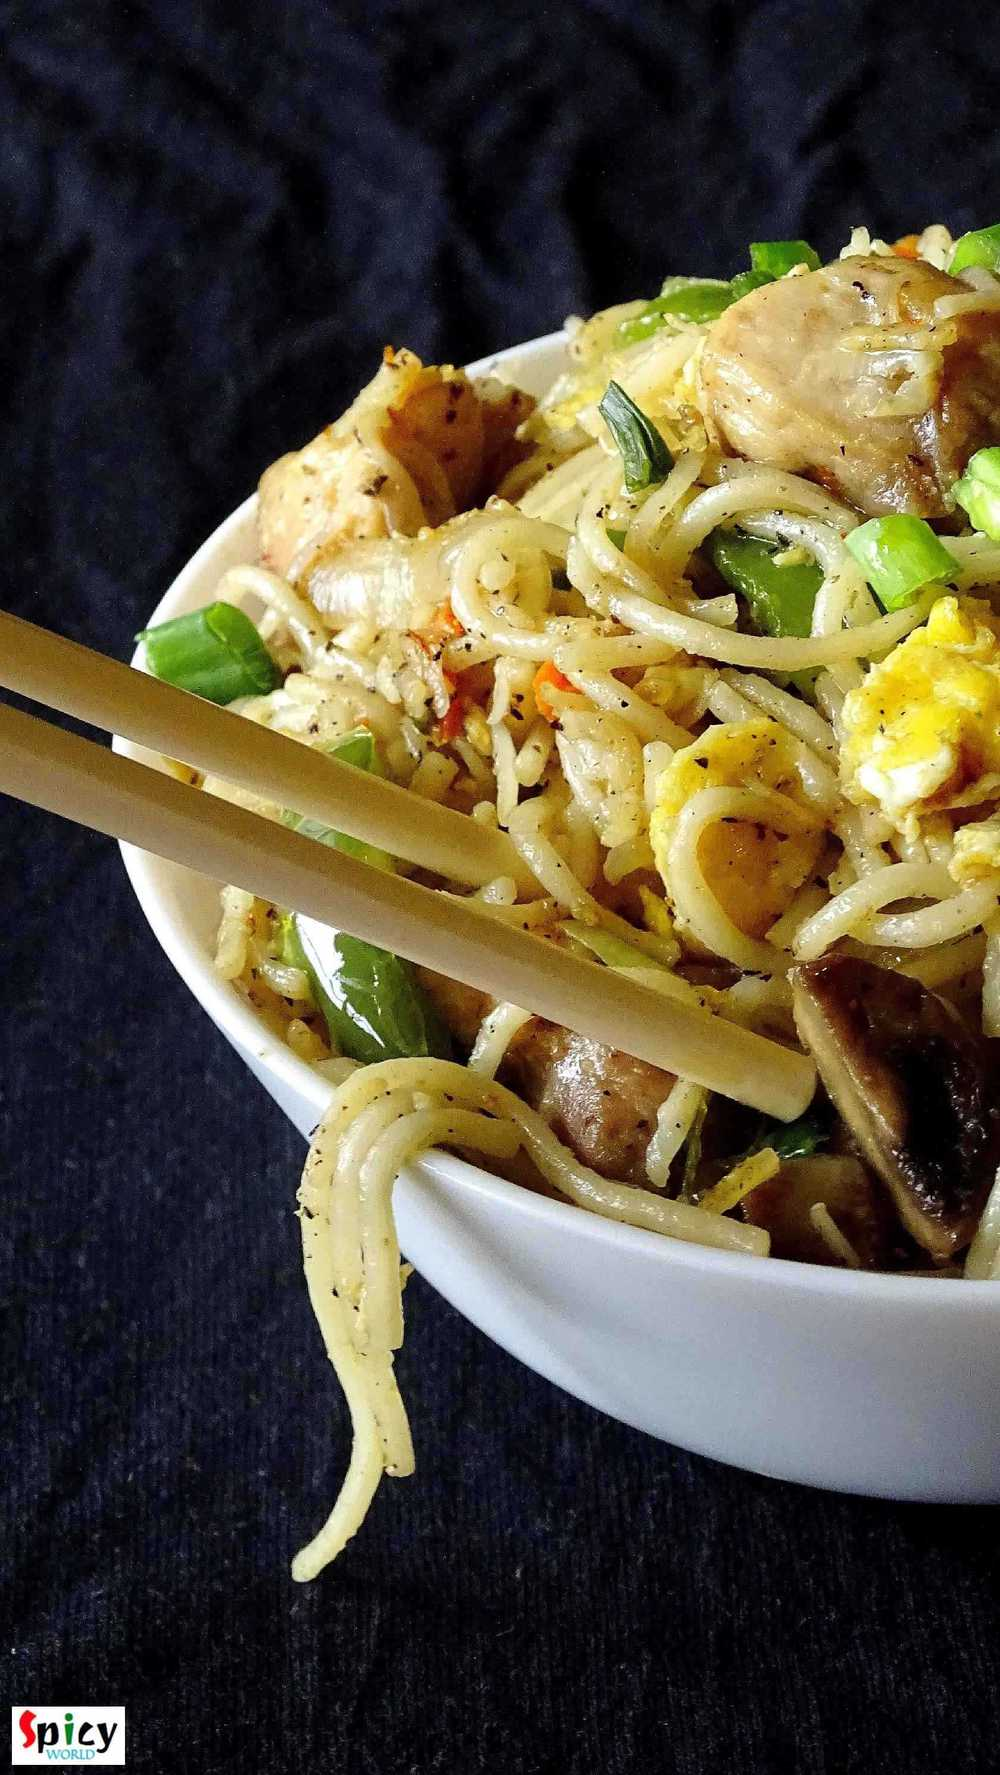 Mix Hakka Noodles / Mix Chowmin